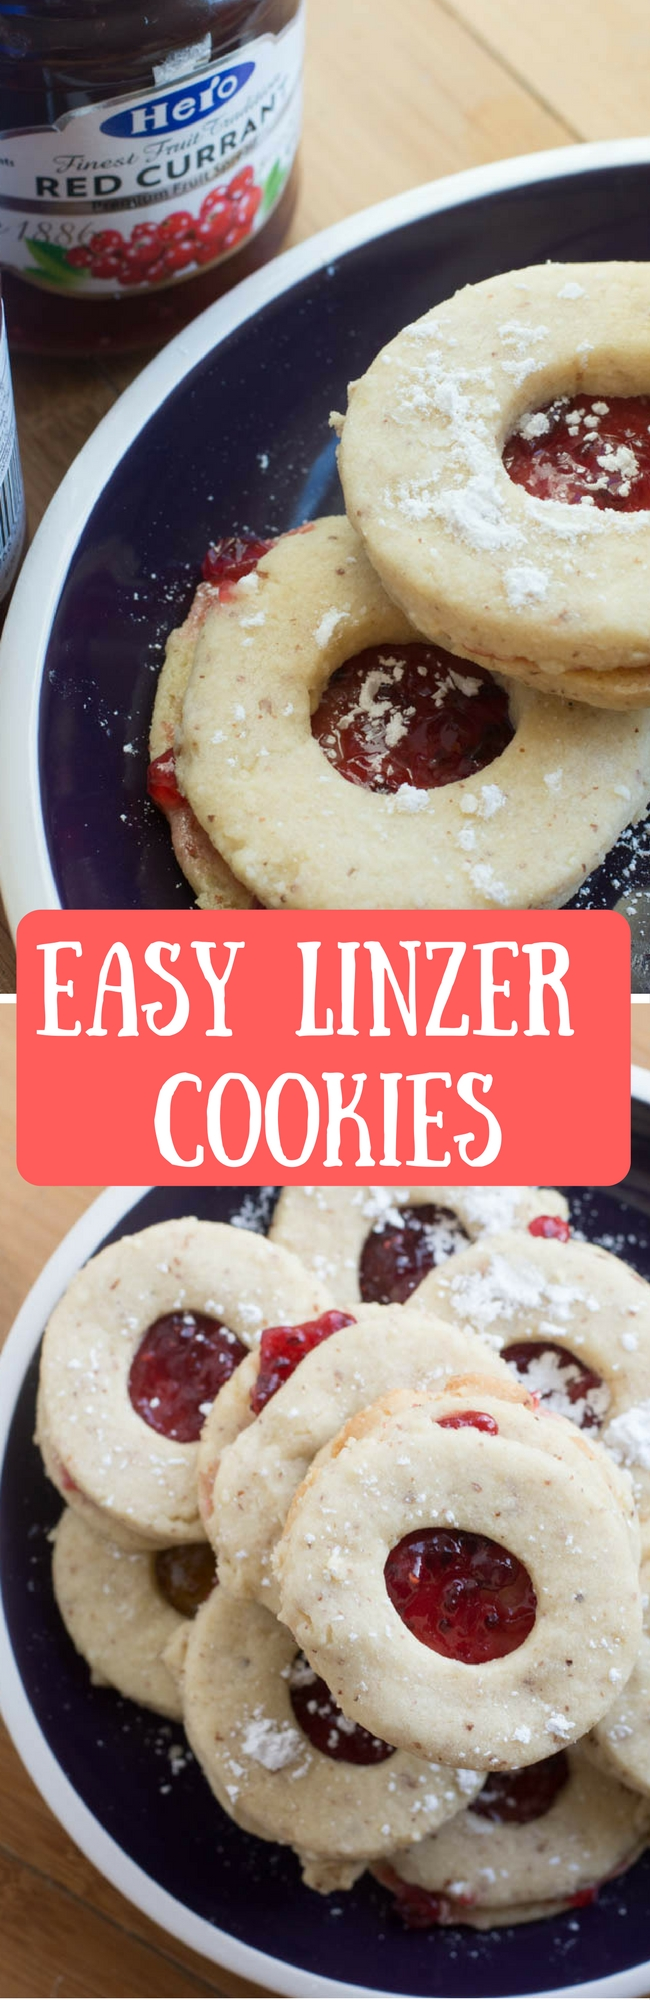 This is the best linzer cookie recipe! This is an easy recipe made with almonds and filled with a delicate layer of jam. It's the perfect holiday cookie recipe that will get everyone baking this year! via @clarkscondensed